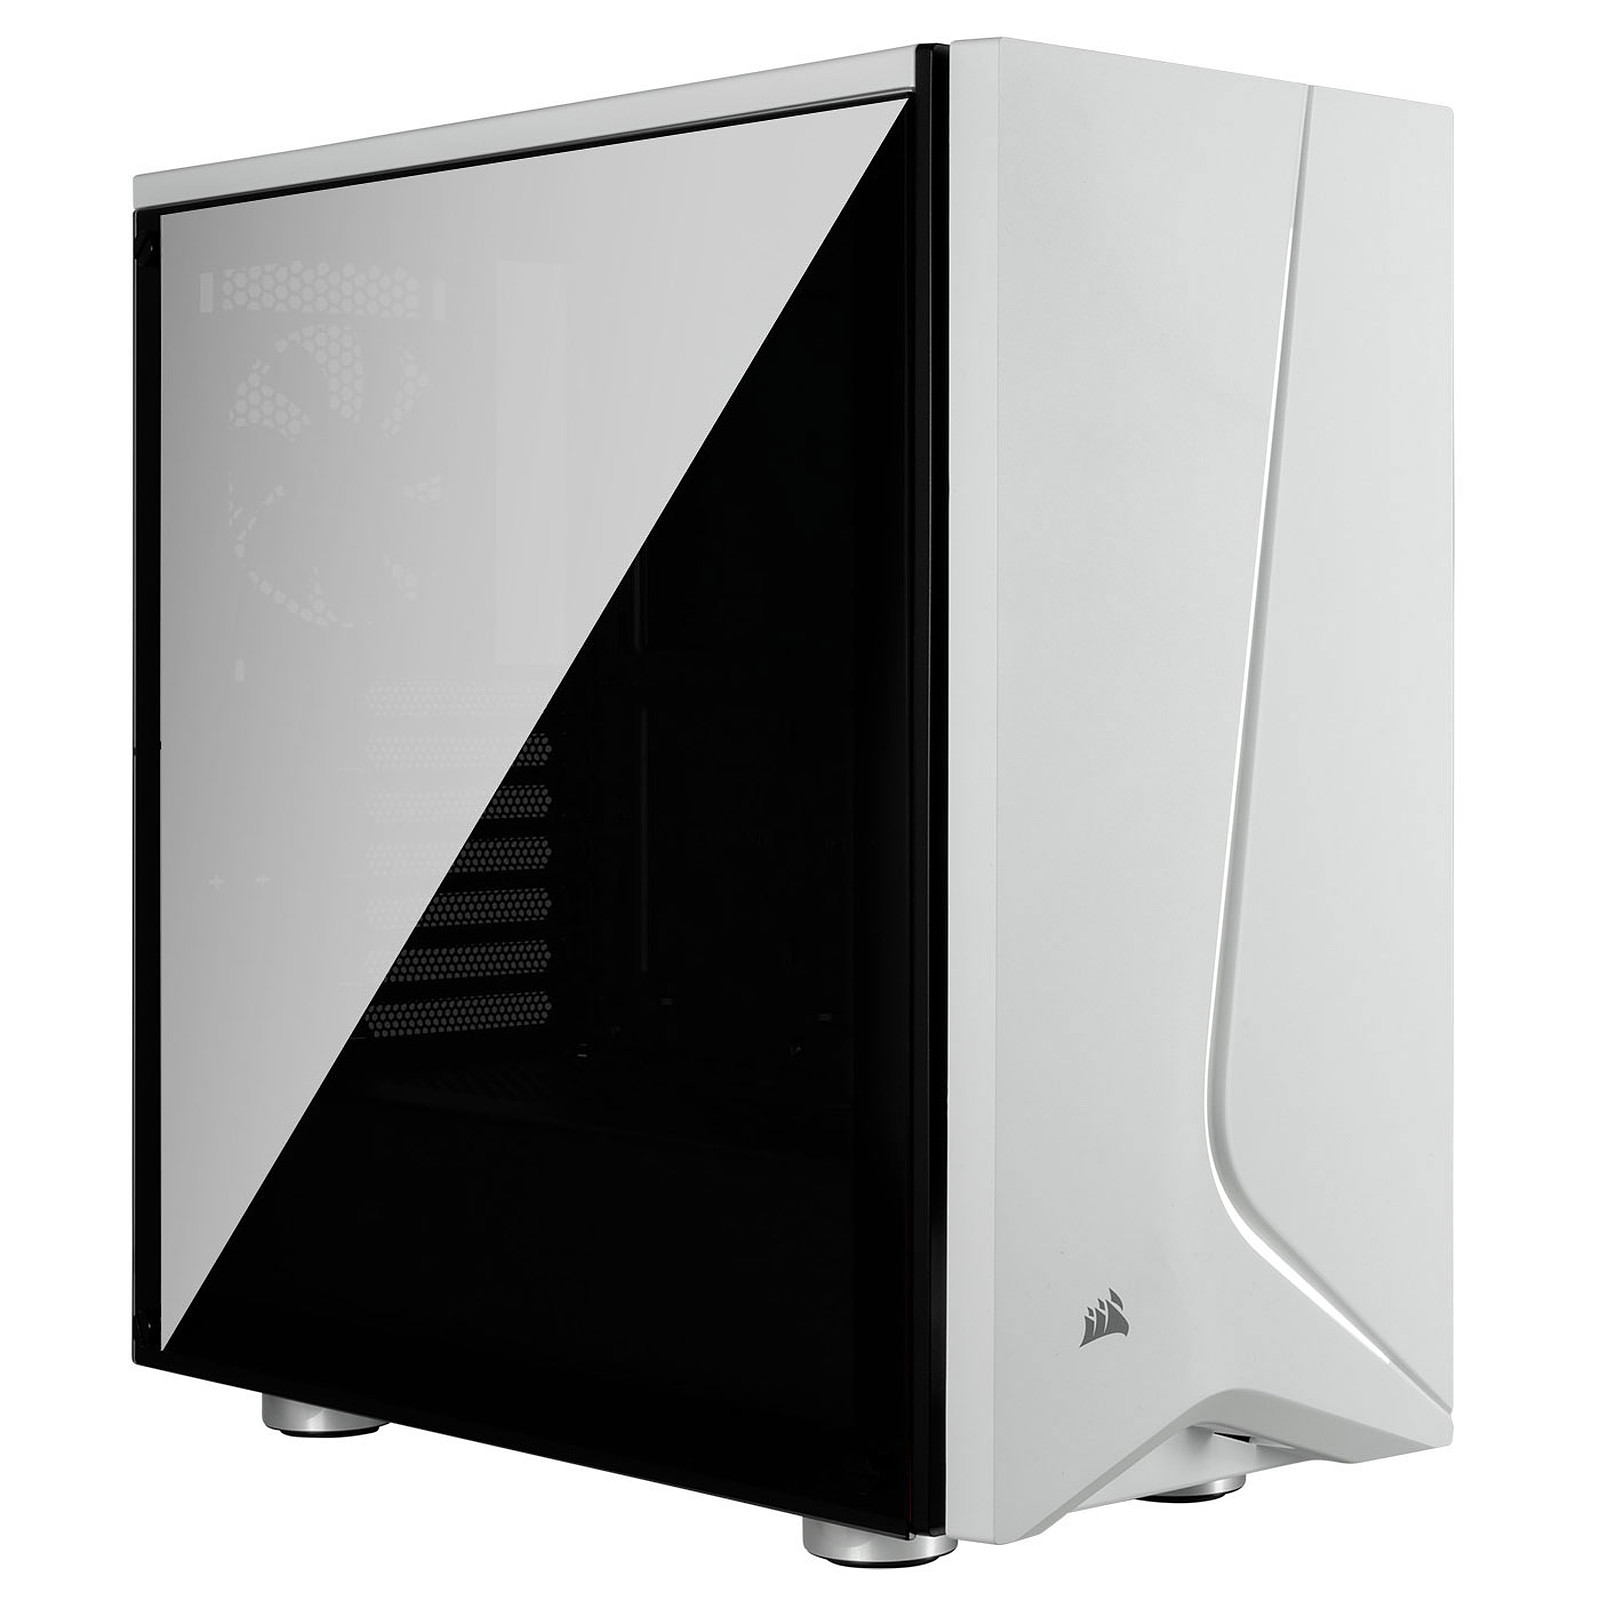 LDLC PC10 Whatelse